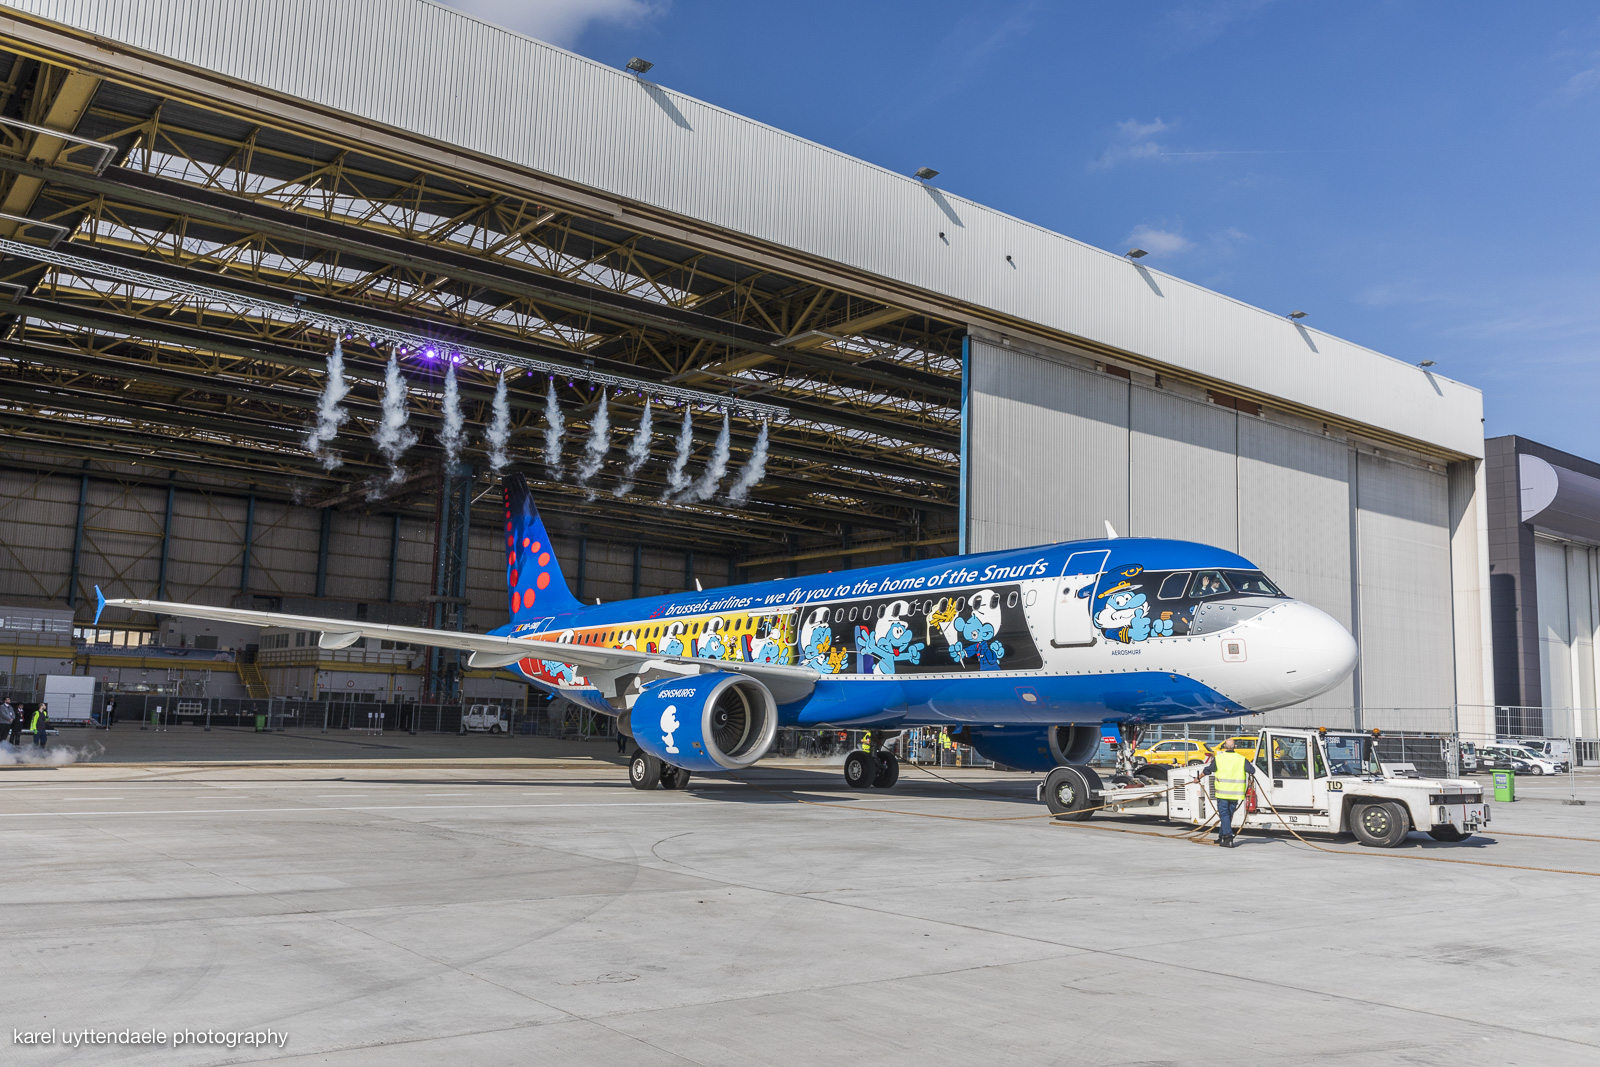 Introduction Brussels Airlines Aerosmurf #SNSmurfs